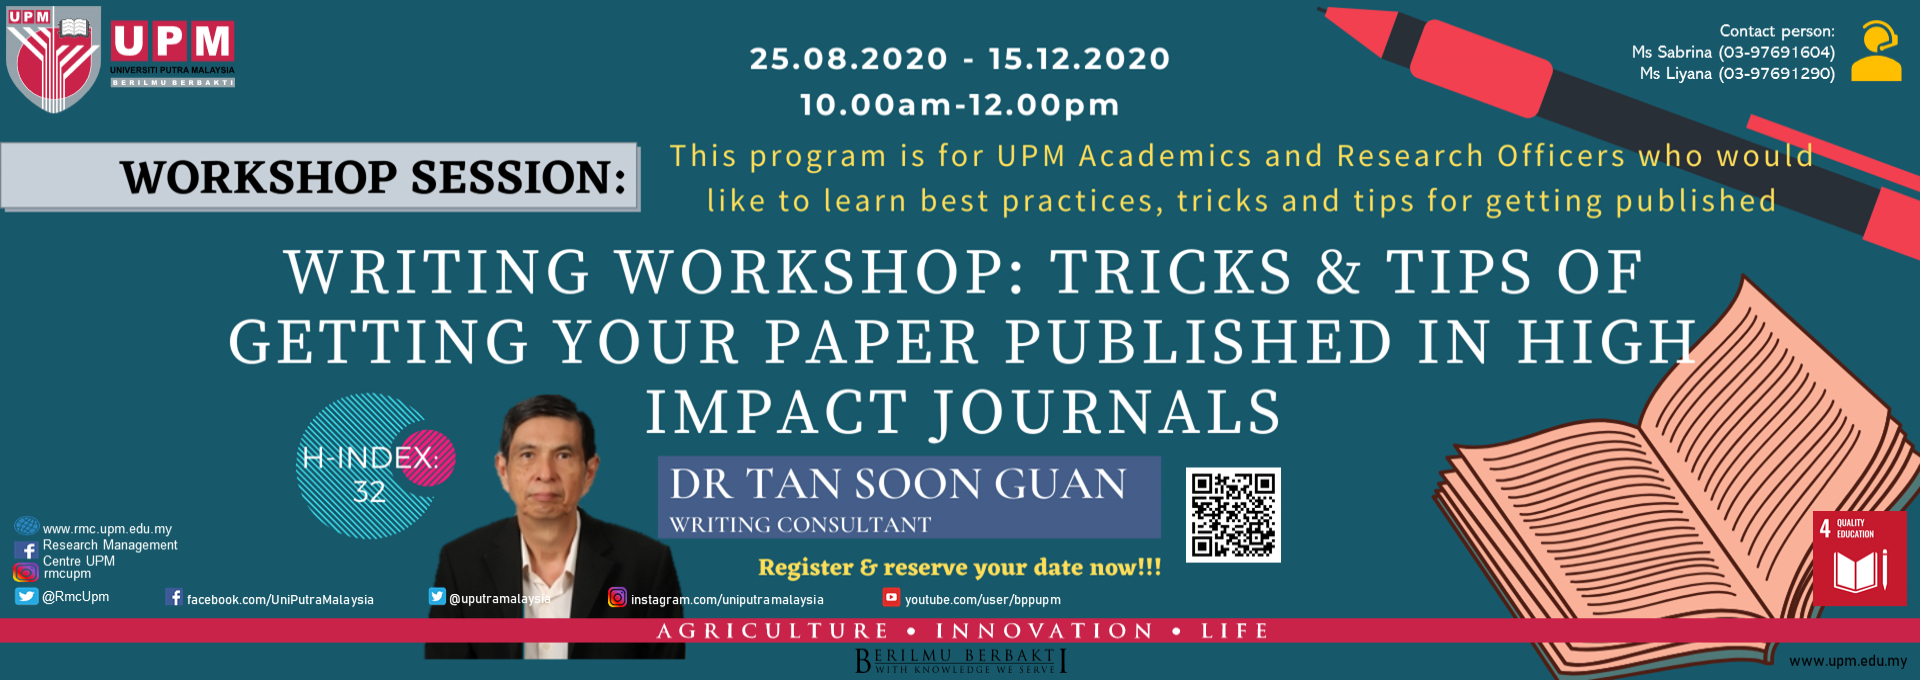 Writing Workshop: Tricks & tips of getting your paper published in high impact journals